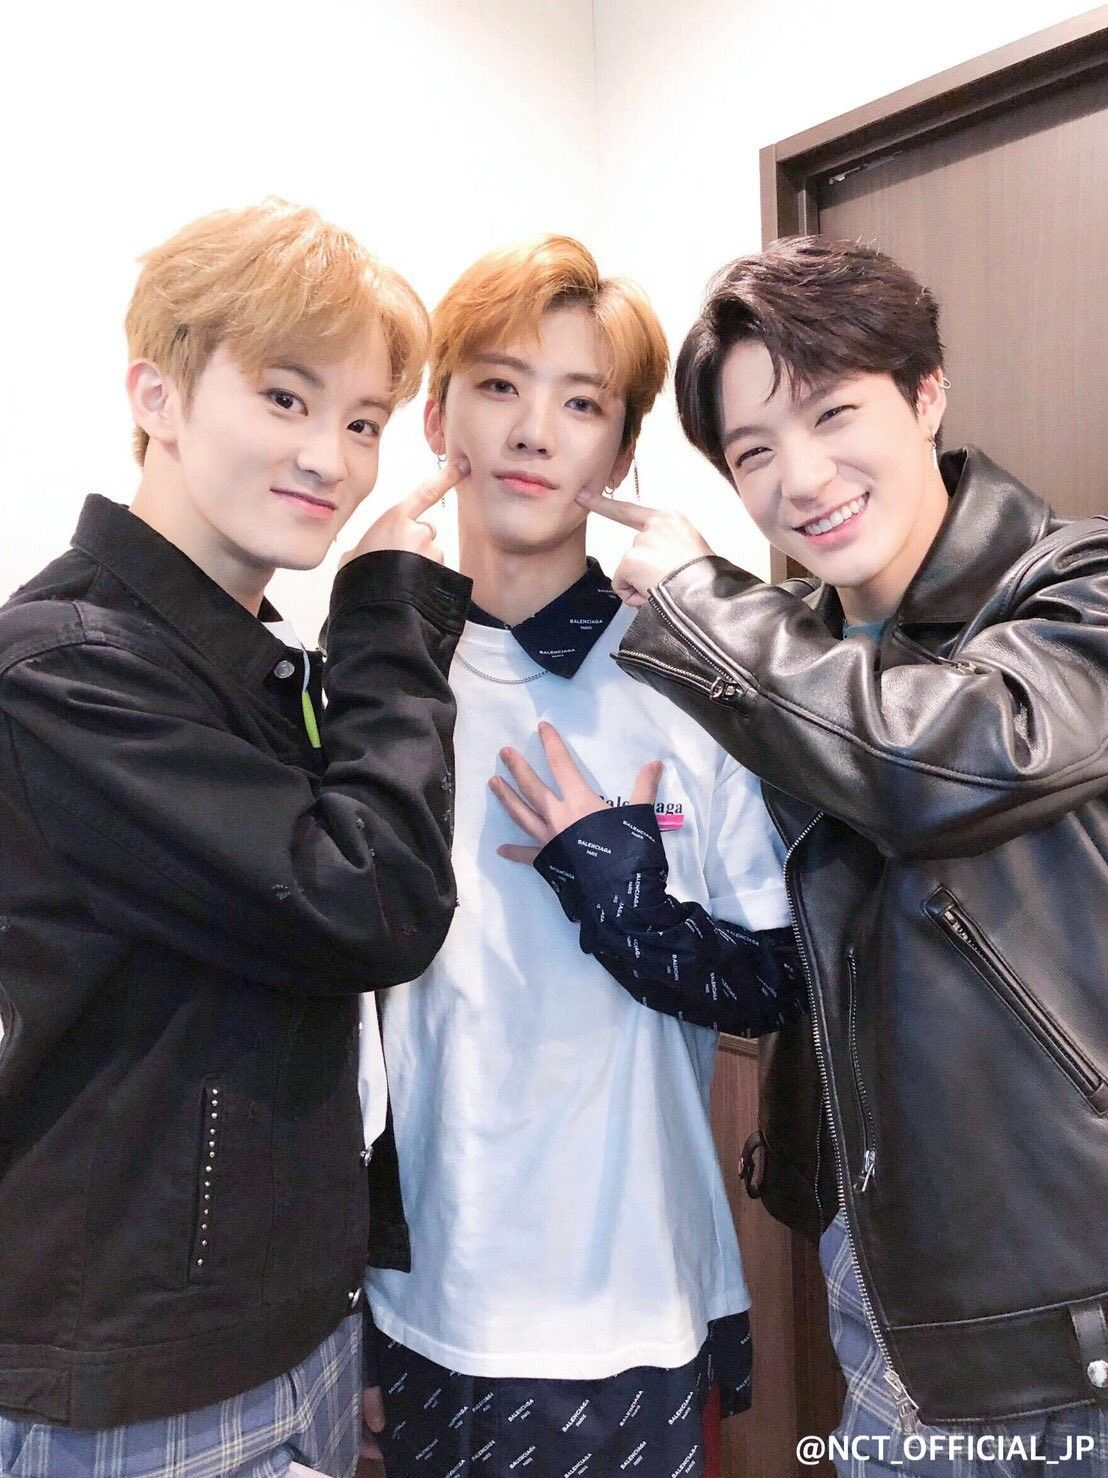 I ship Jeno and Jaemin so much that its unhealthy | NCT | Nct, Nct